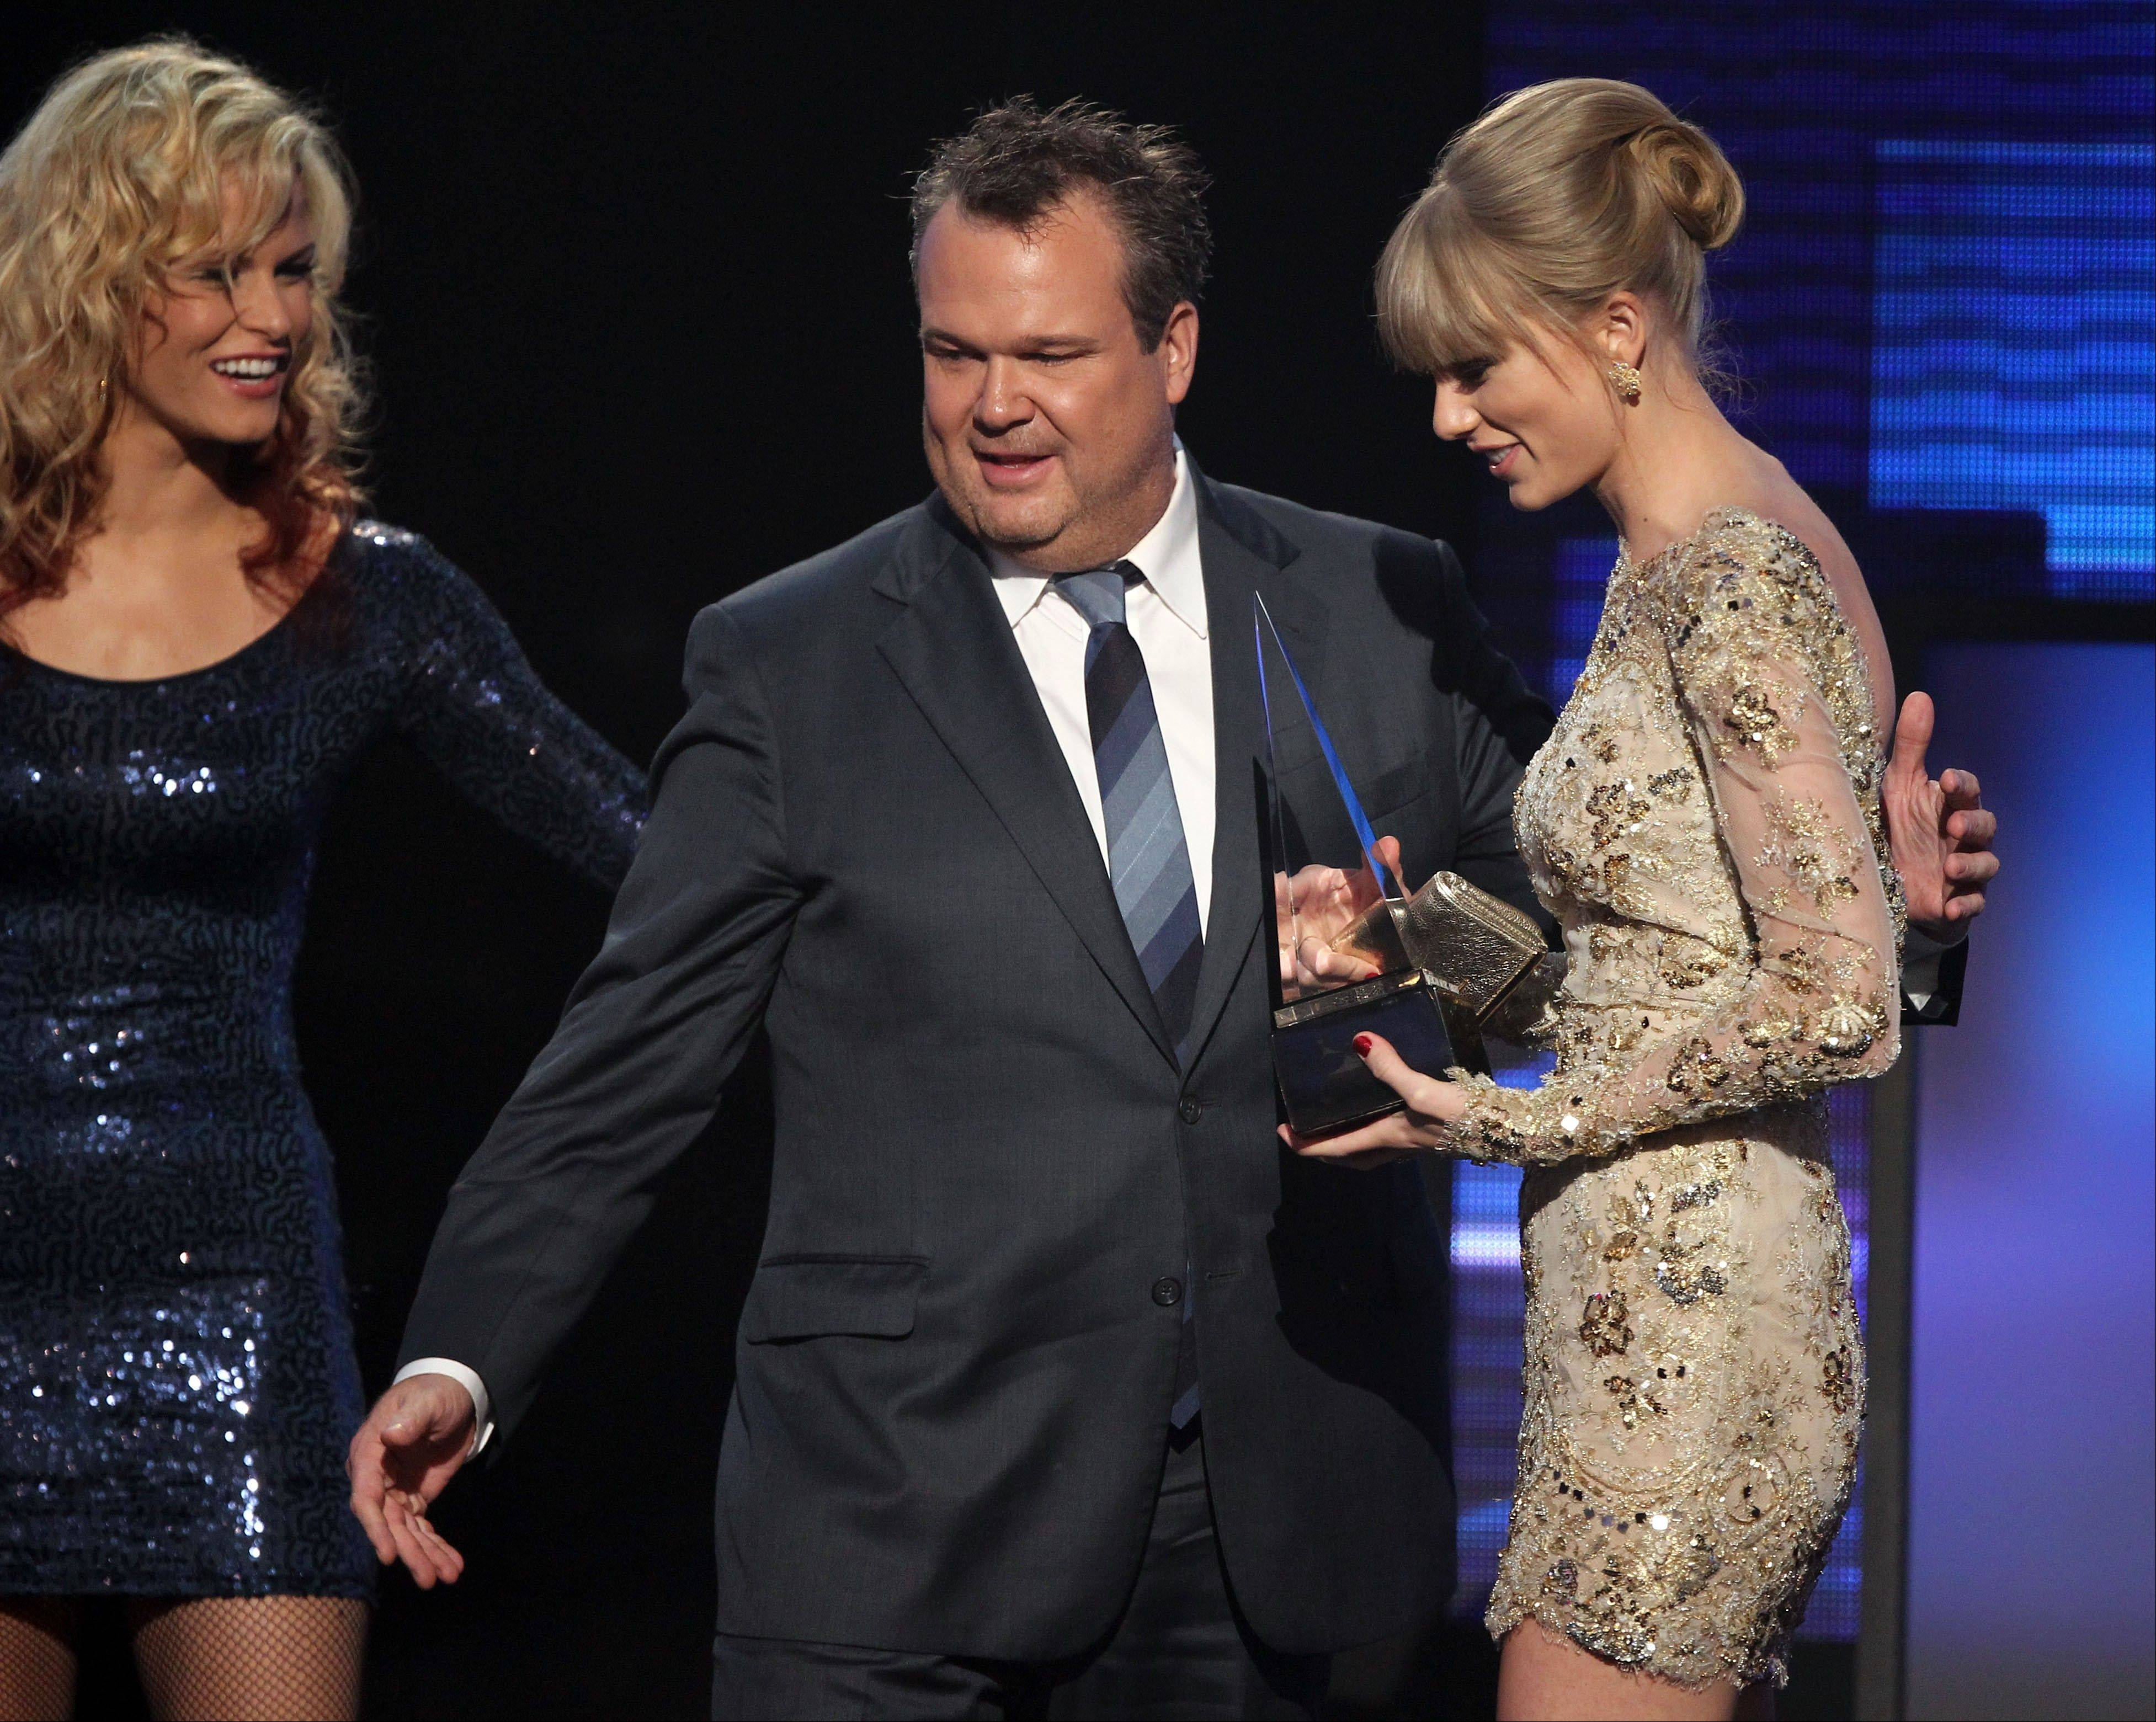 Taylor Swift accepts the award for favorite female country artist from presenter Eric Stonestreet at the 40th Annual American Music Awards on Sunday, Nov. 18, 2012, in Los Angeles.